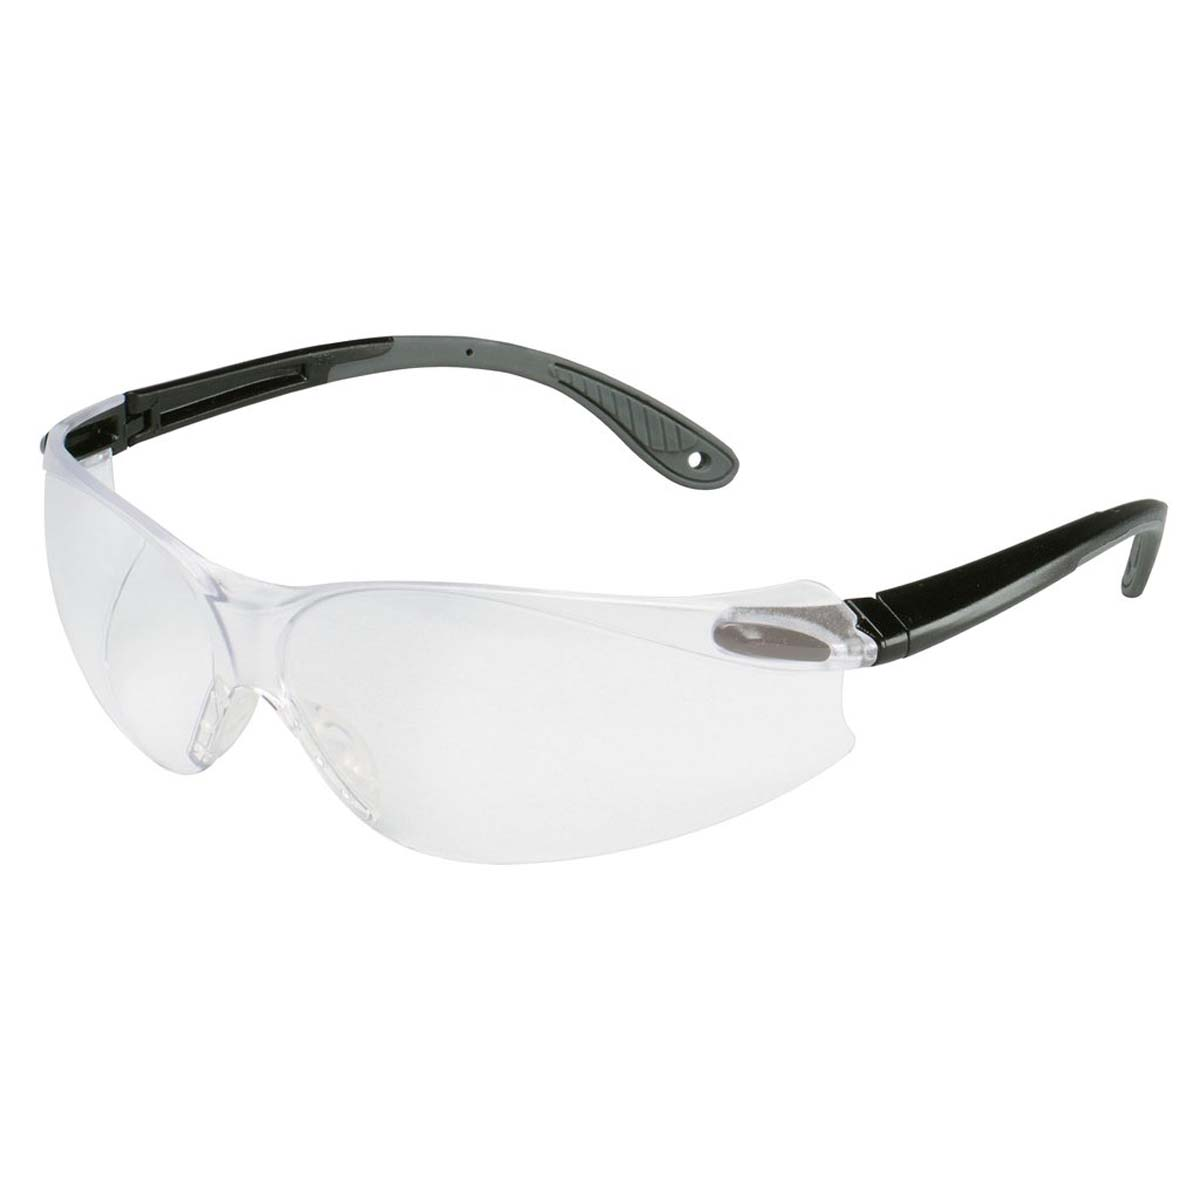 3M Virtua V4 Protective Eyewear 11670-00000-20 Clear HC Lens, Black/Gray Temple